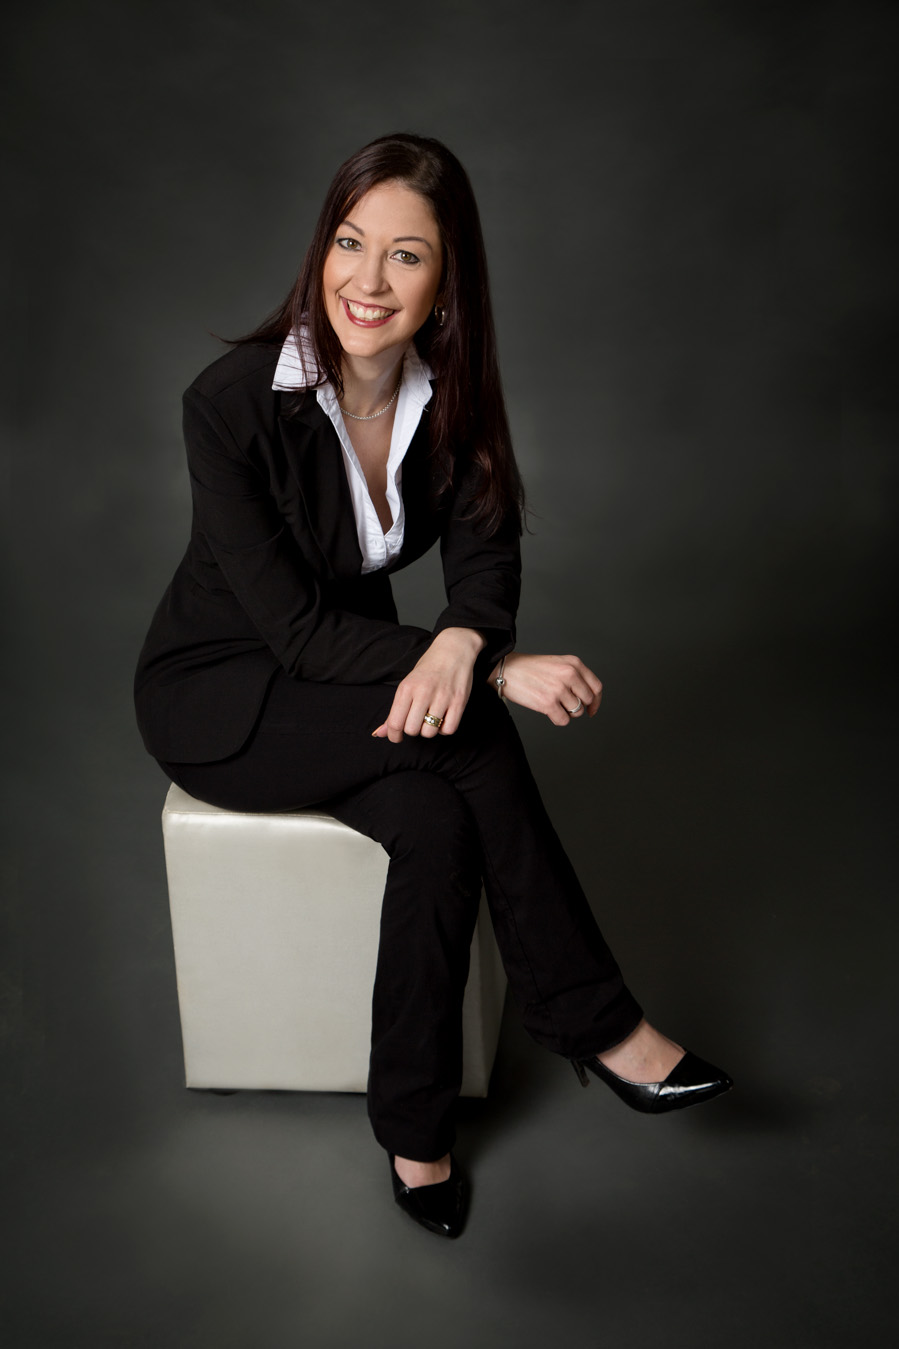 MJ Accounting Firm - Melissa Jacobs